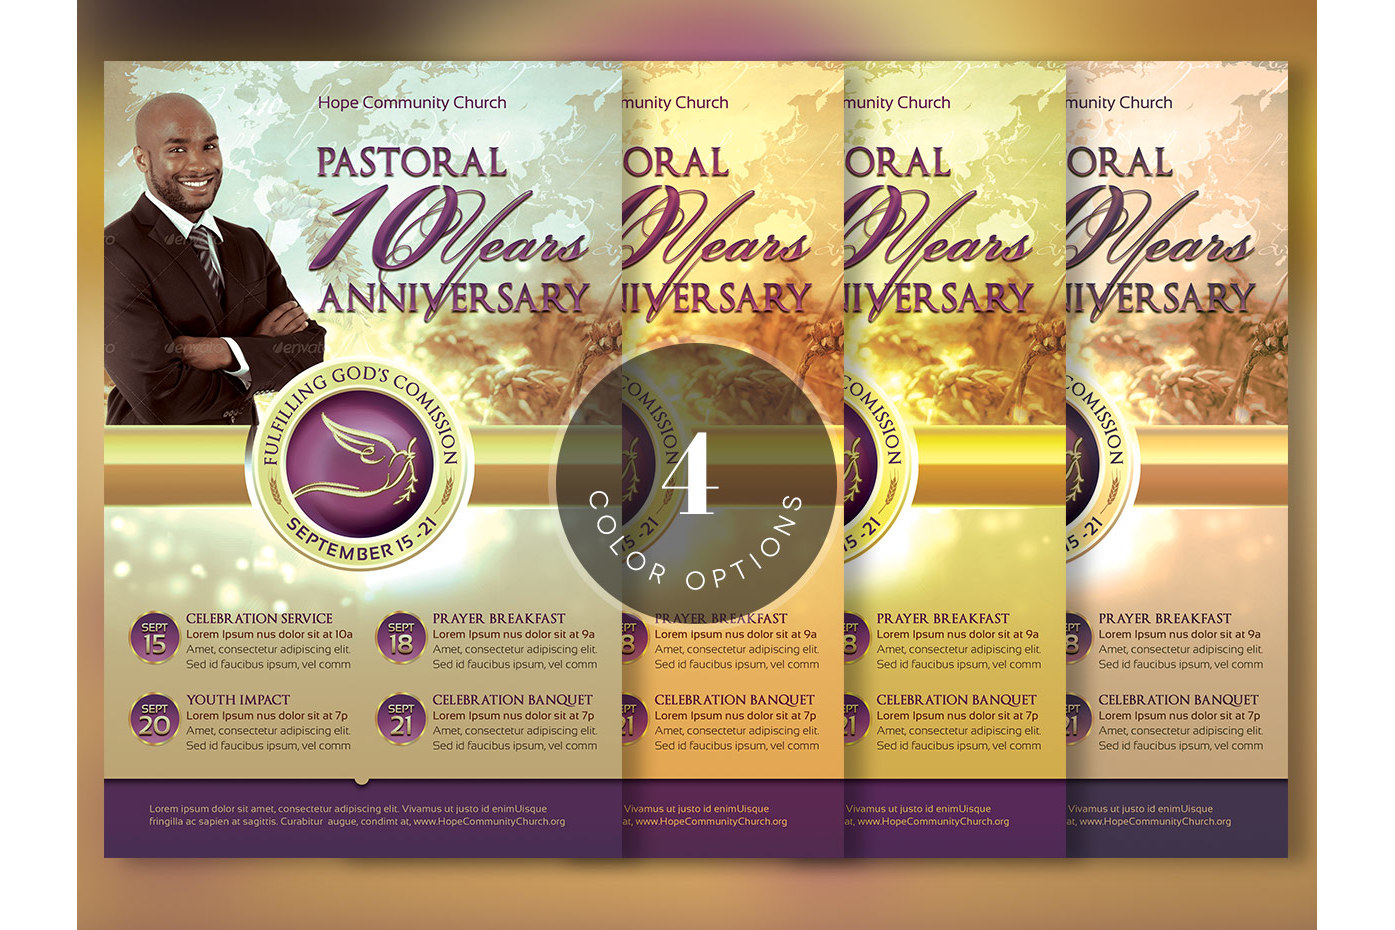 Clergy Anniversary Flyer Template by Go | Design Bundles